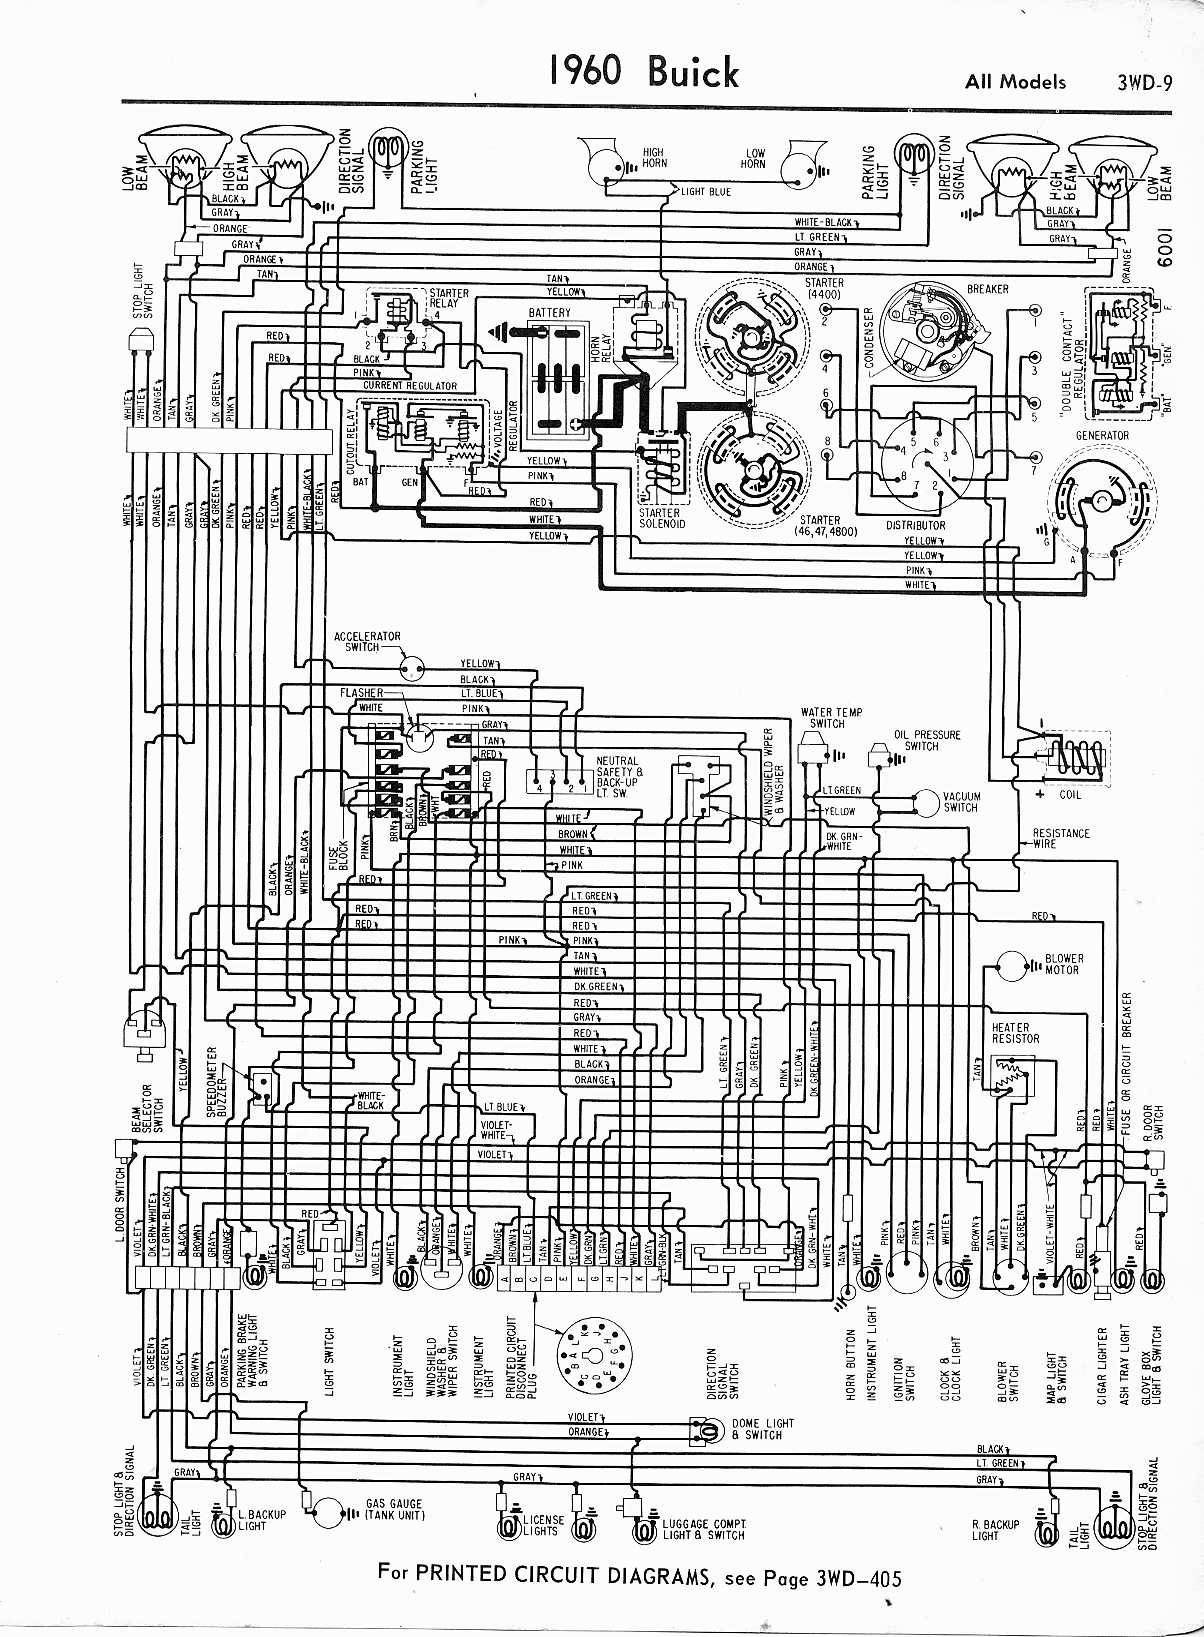 1960 buick wiring diagram wiring diagram general 1960 buick wiring diagram 1960 buick wiring diagram #1